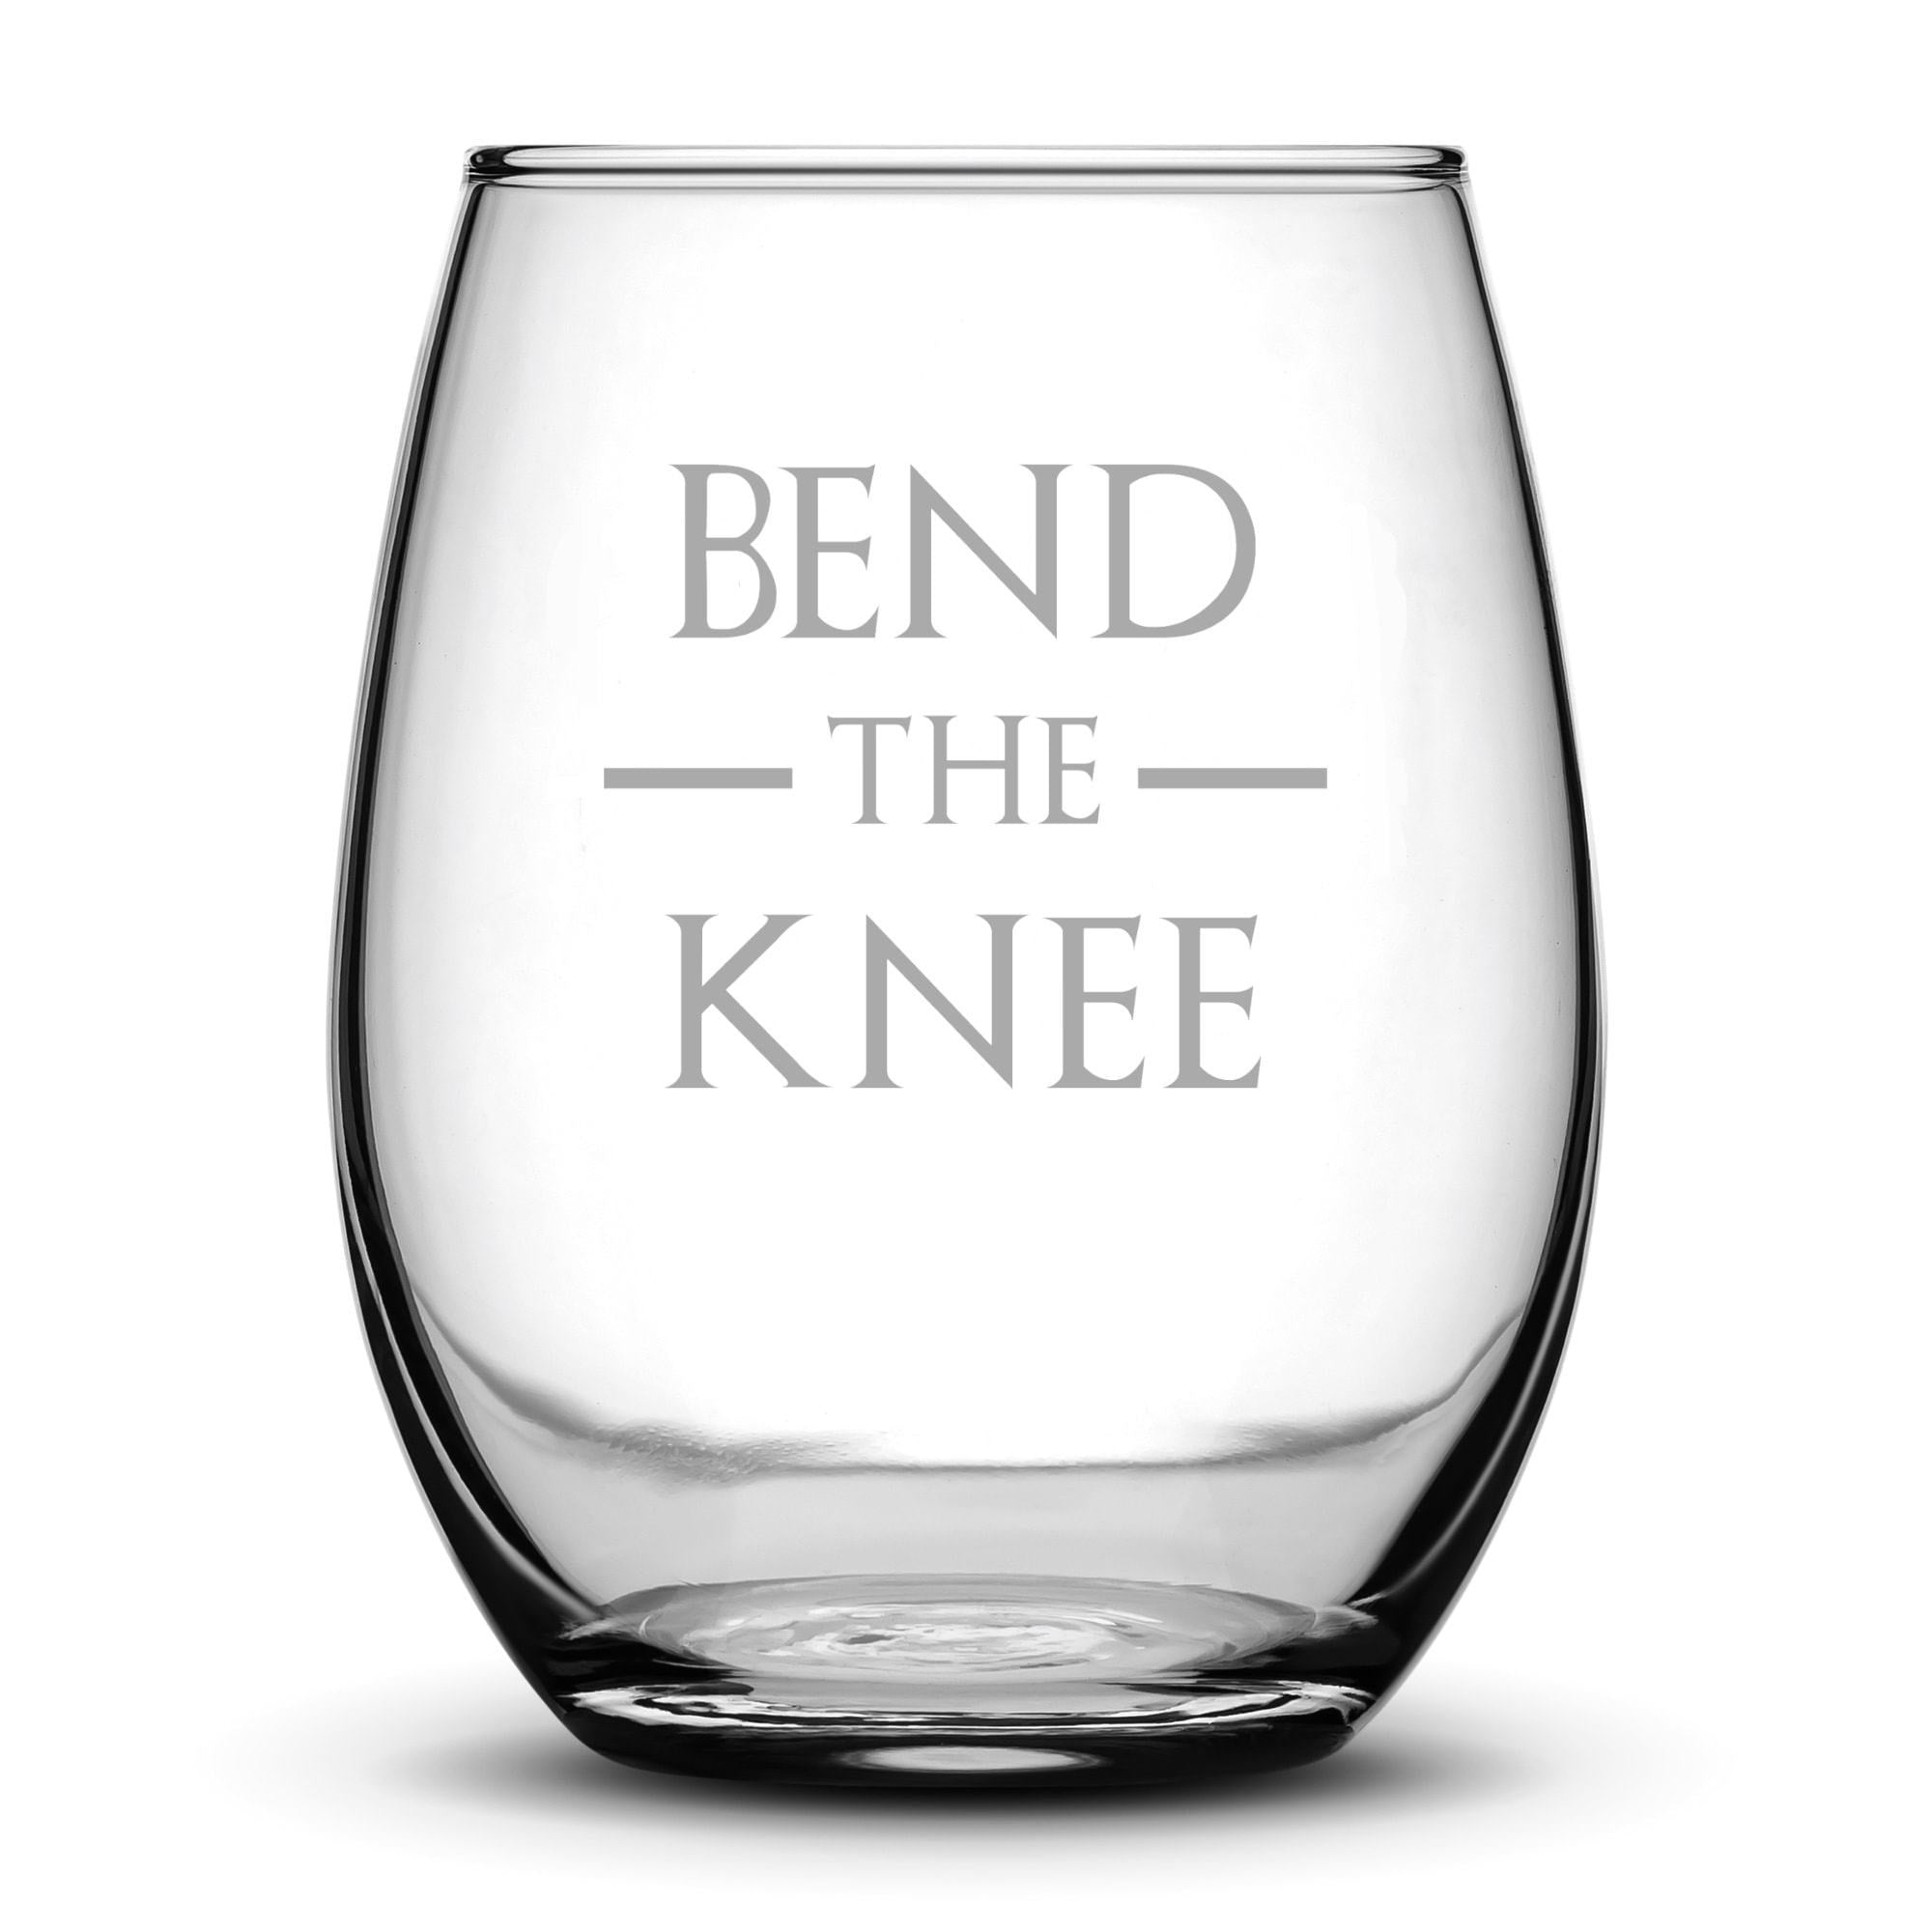 Wine Glass with Game of Thrones Quote, Bend The Knee by Integrity Bottles